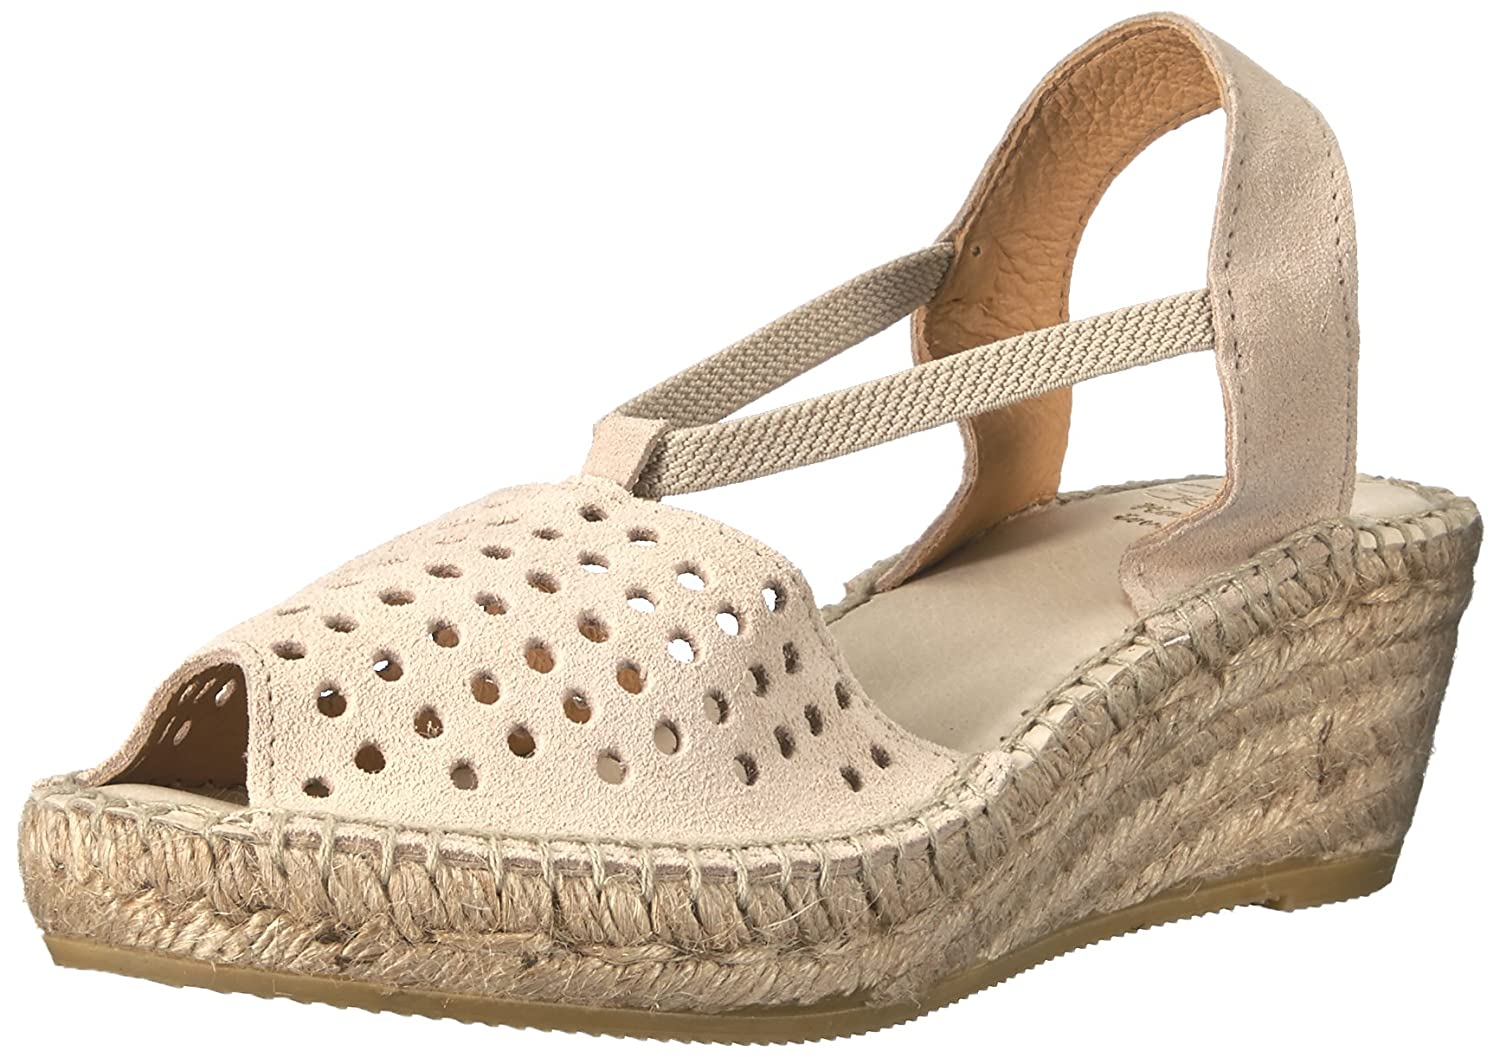 Andre Assous Women's Corrine Espadrille Wedge Sandal B01G5YJR3A 40 M EU|Taupe Suede